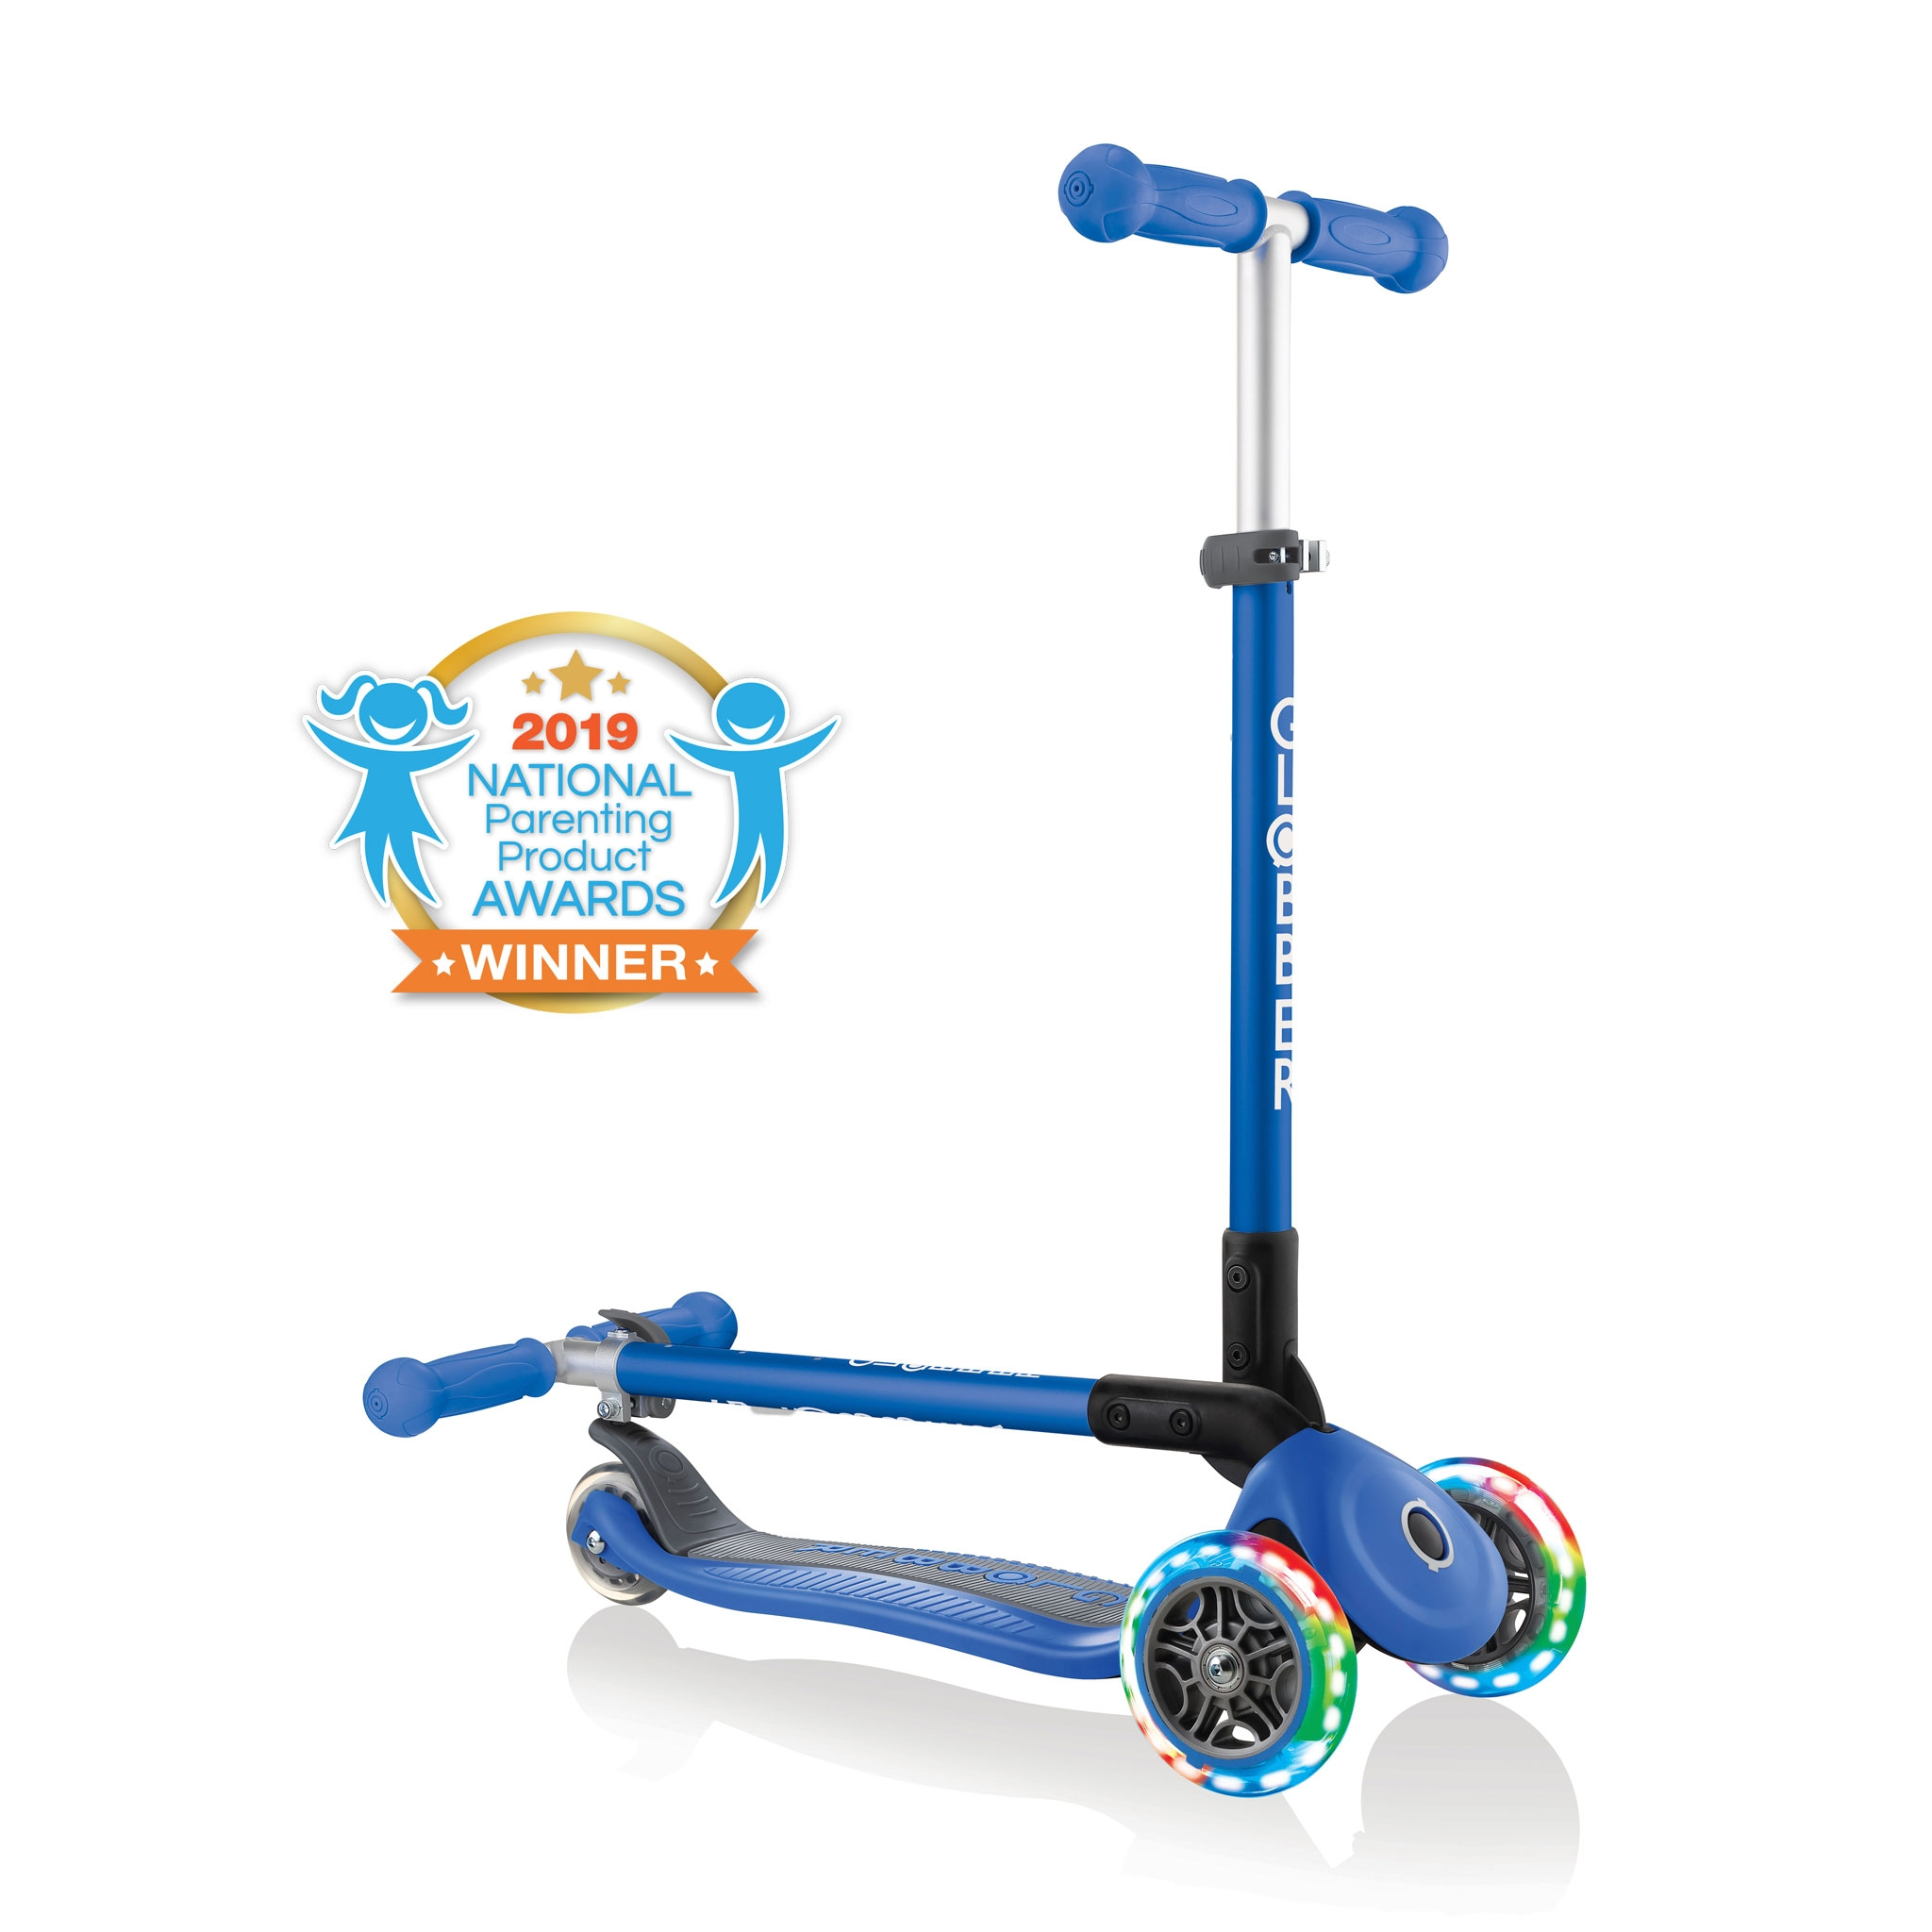 PRIMO-FOLDABLE-LIGHTS-3-wheel-fold-up-scooter-for-kids-navy-blue2 0